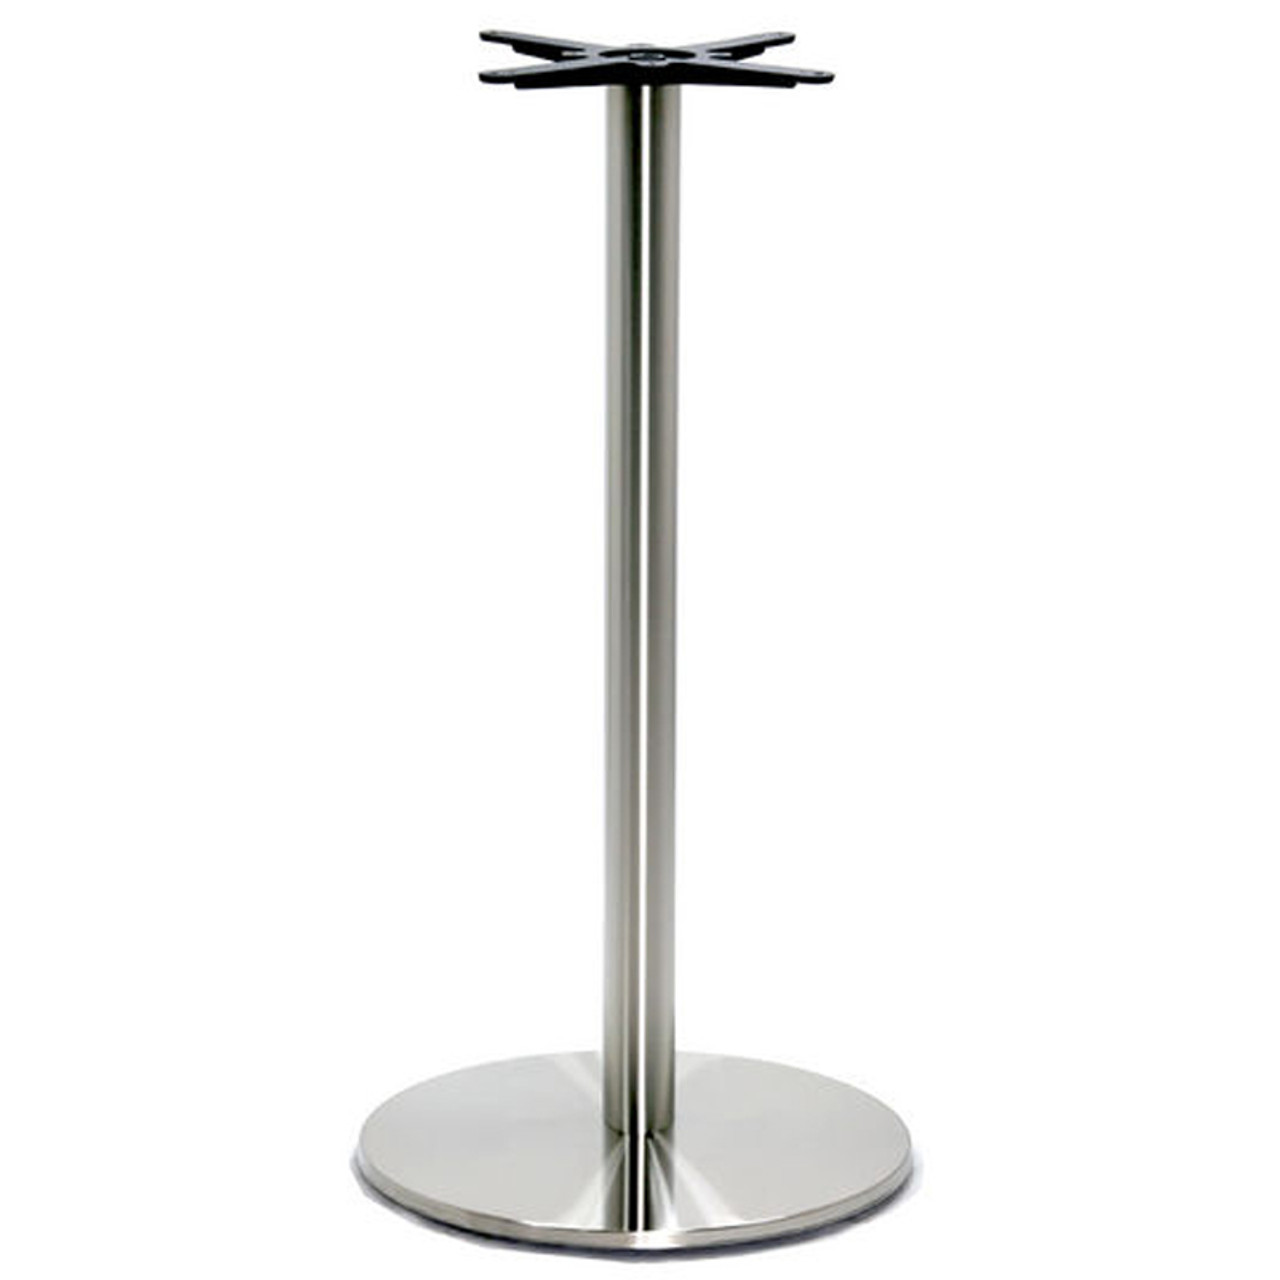 """Round Table Base, Brushed Stainless Steel, 42-1/2"""" height, 18"""" round base, 3""""diameter steel column - replacementtablelegs.com"""